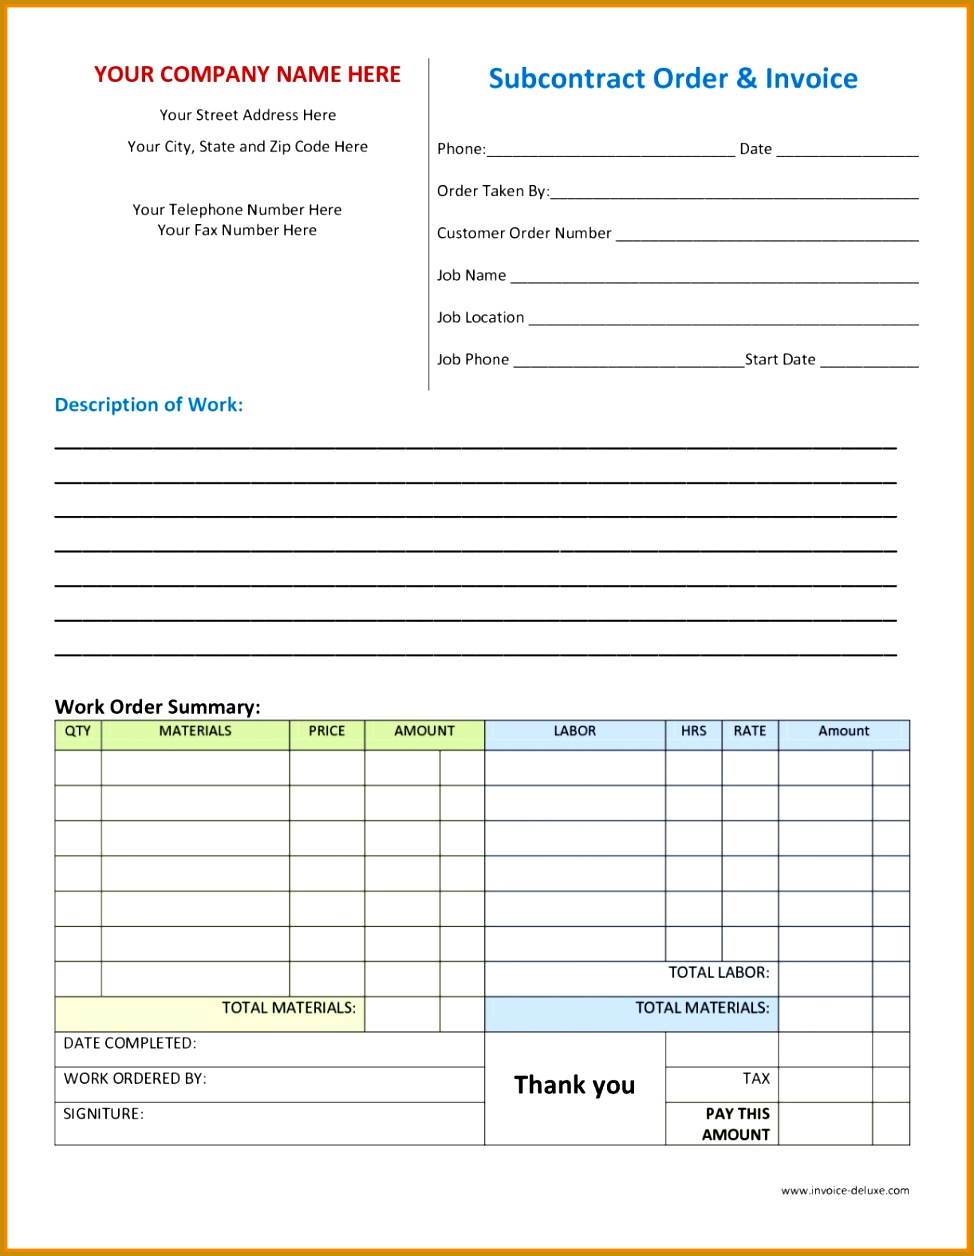 Business Order Templates Works Order Template Objective For 3 Free Work Order Template Obituary 11 Best s Form Templates Inv Forms For Plumbing 1256974